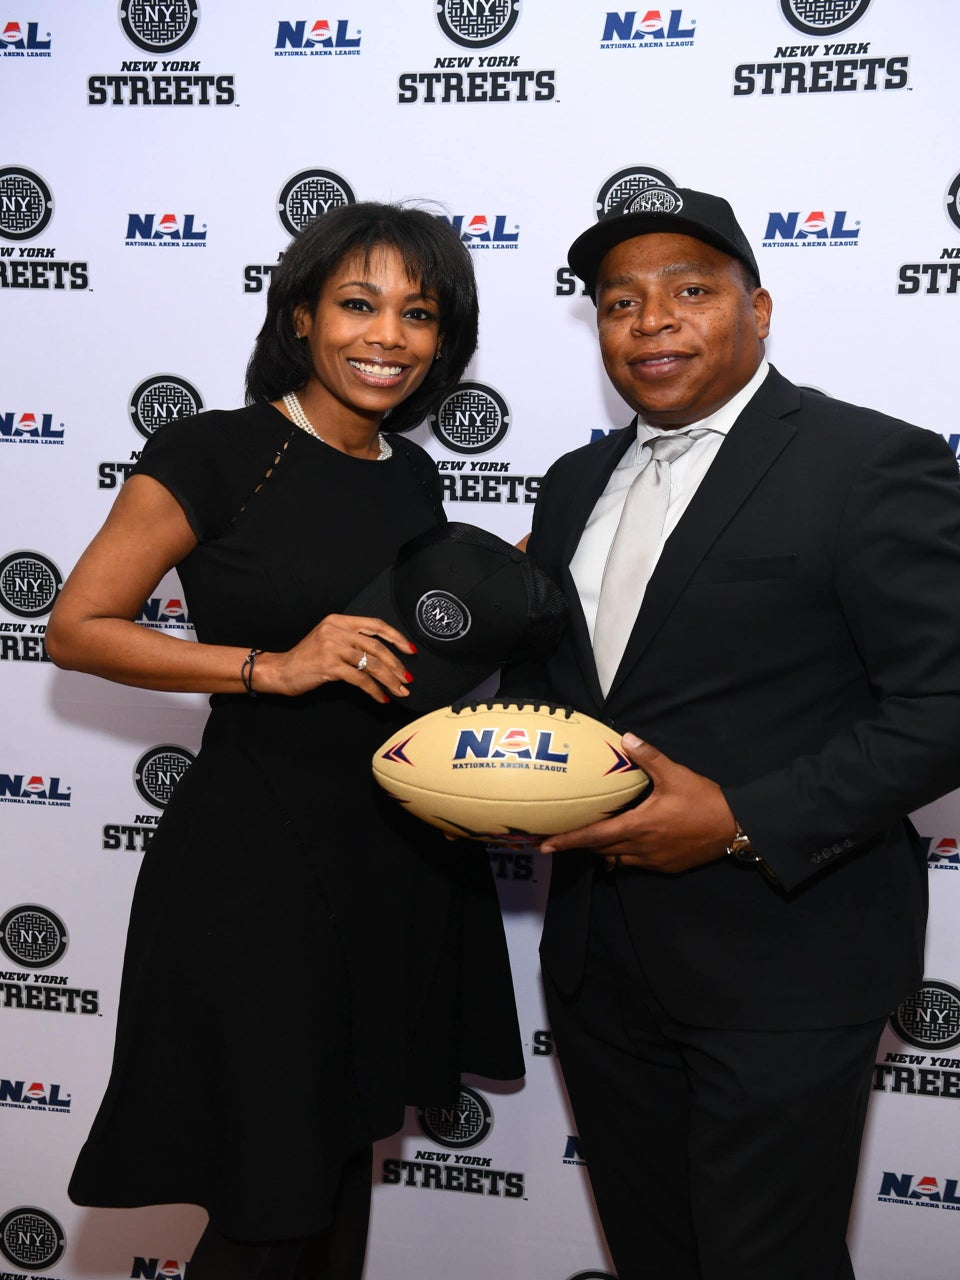 Meet the Black Couple Bringing A Professional Football Franchise To New York City